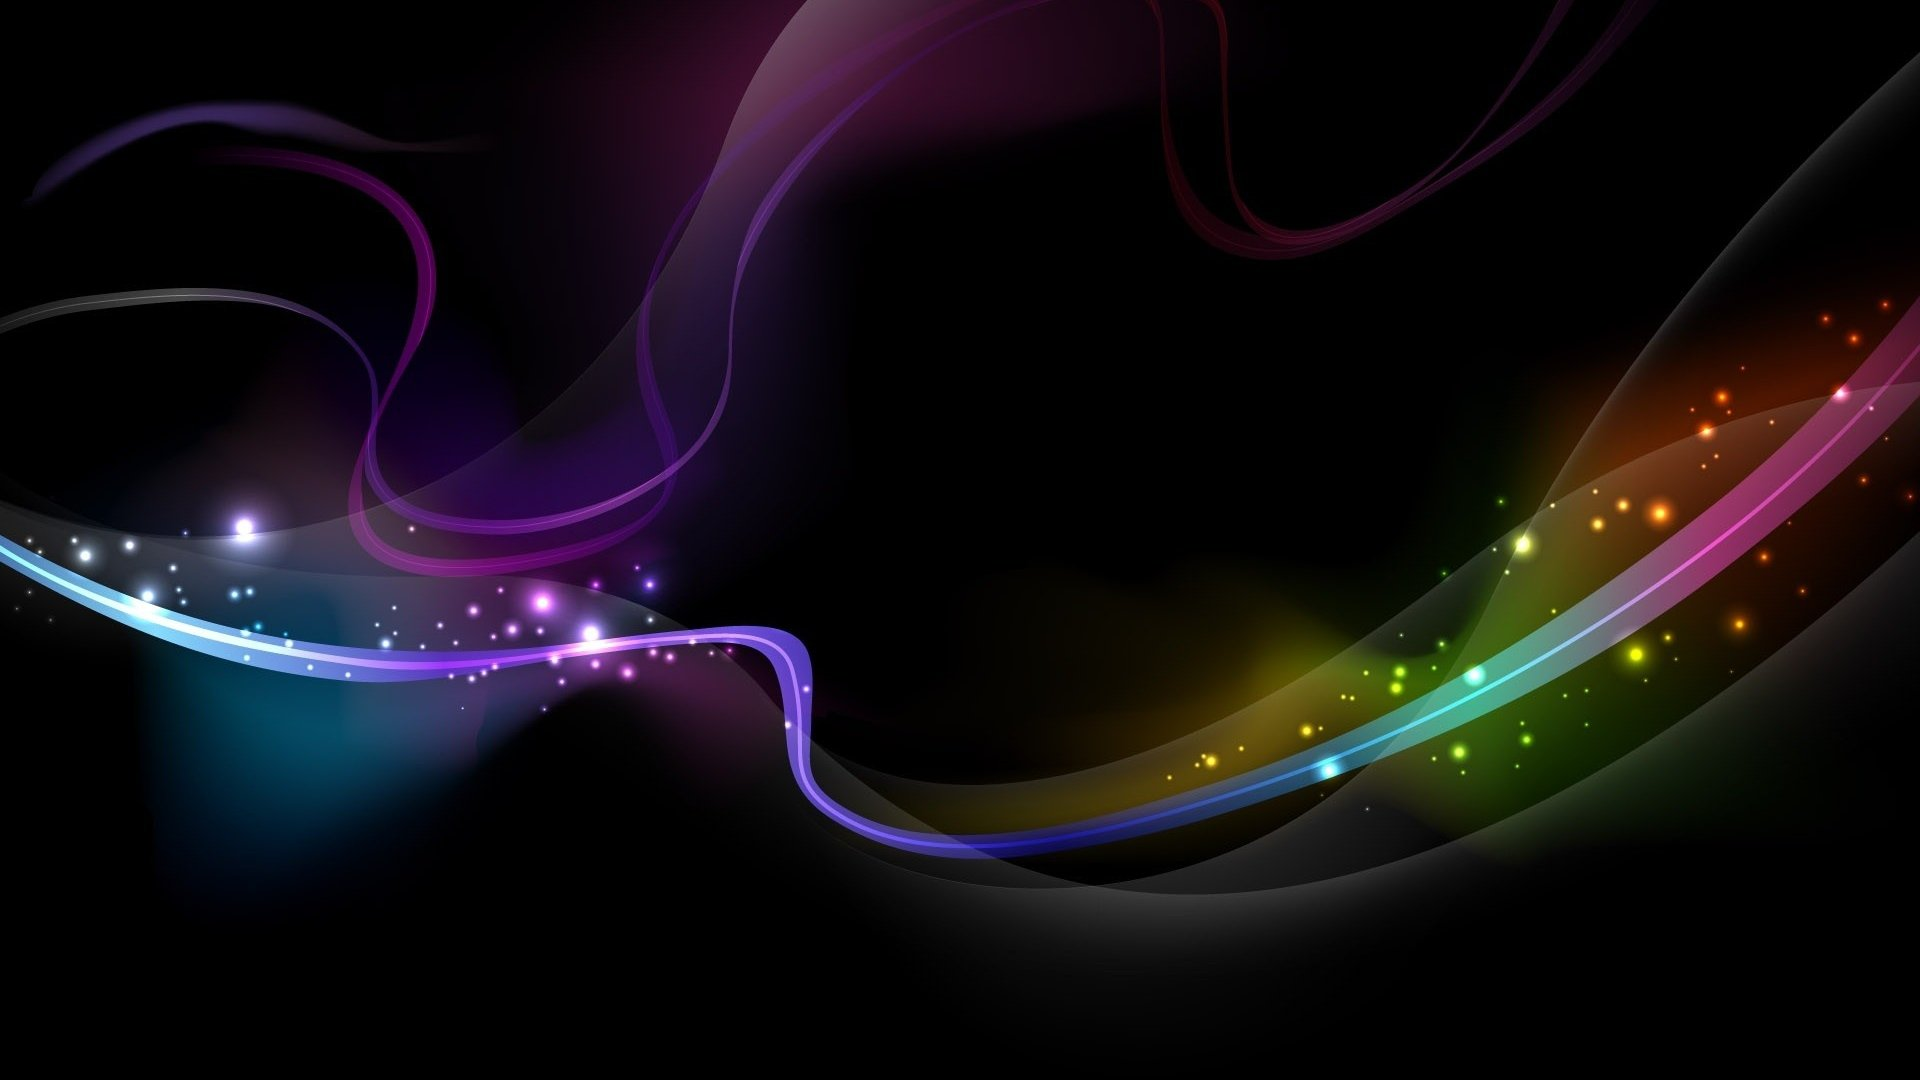 Download Wallpaper 1920x1080 wavy background shadow colored Full HD 1920x1080